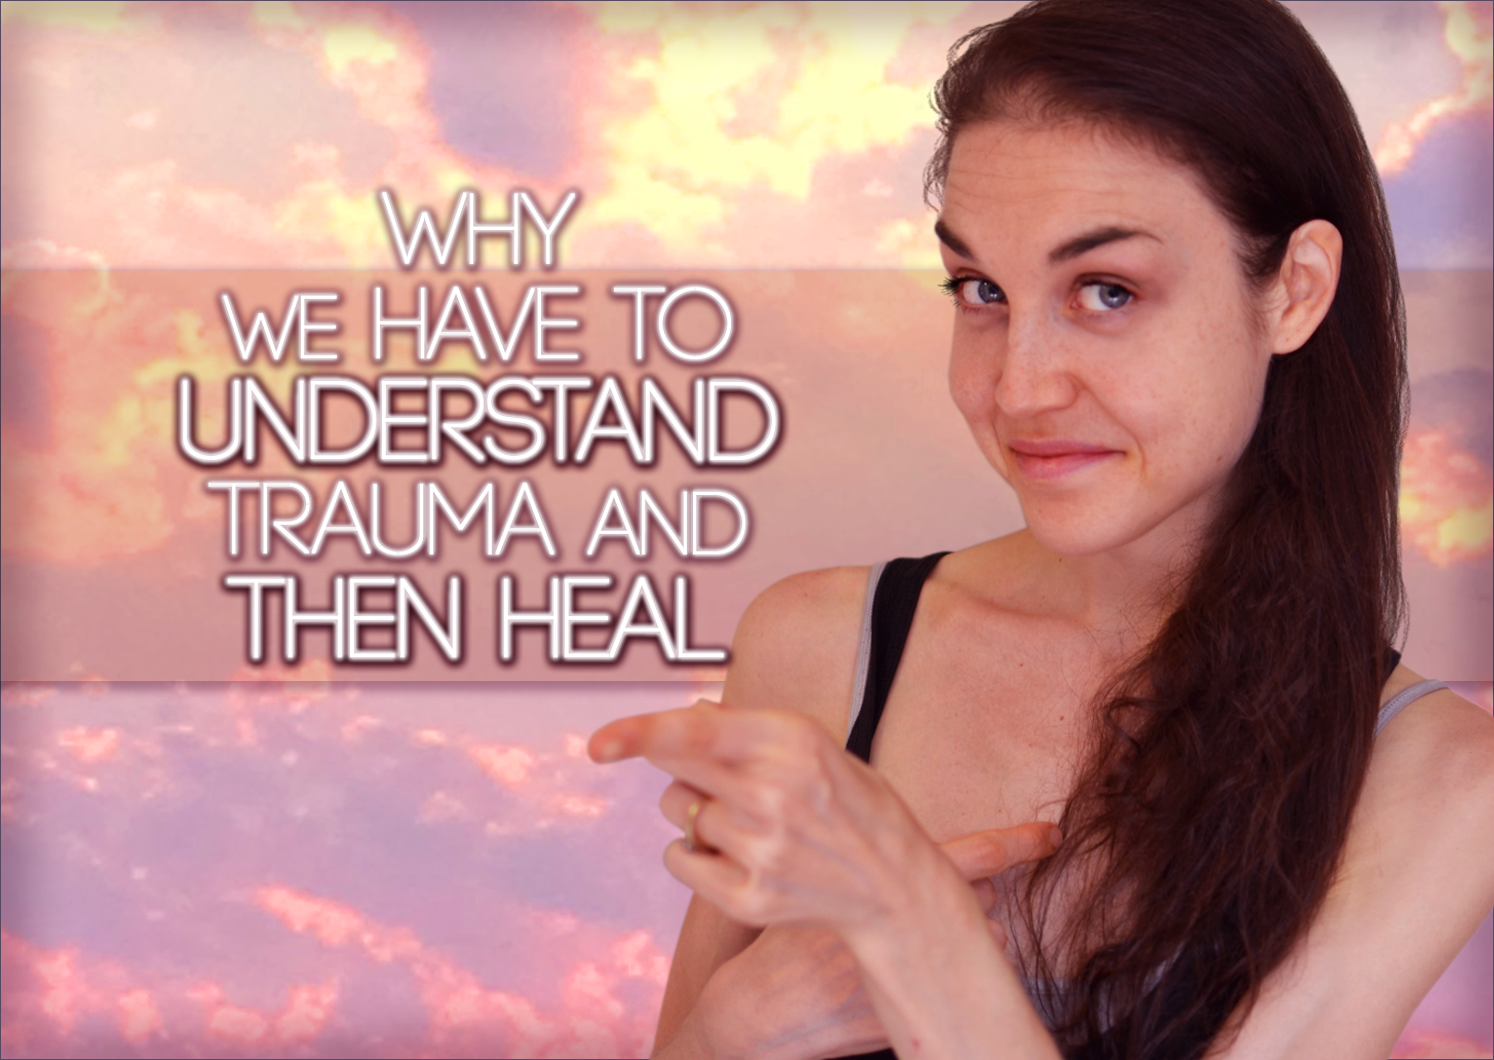 Why We Have To Understand Trauma THEN WE Can Heal – We Don't Have To Get Stuck Forever